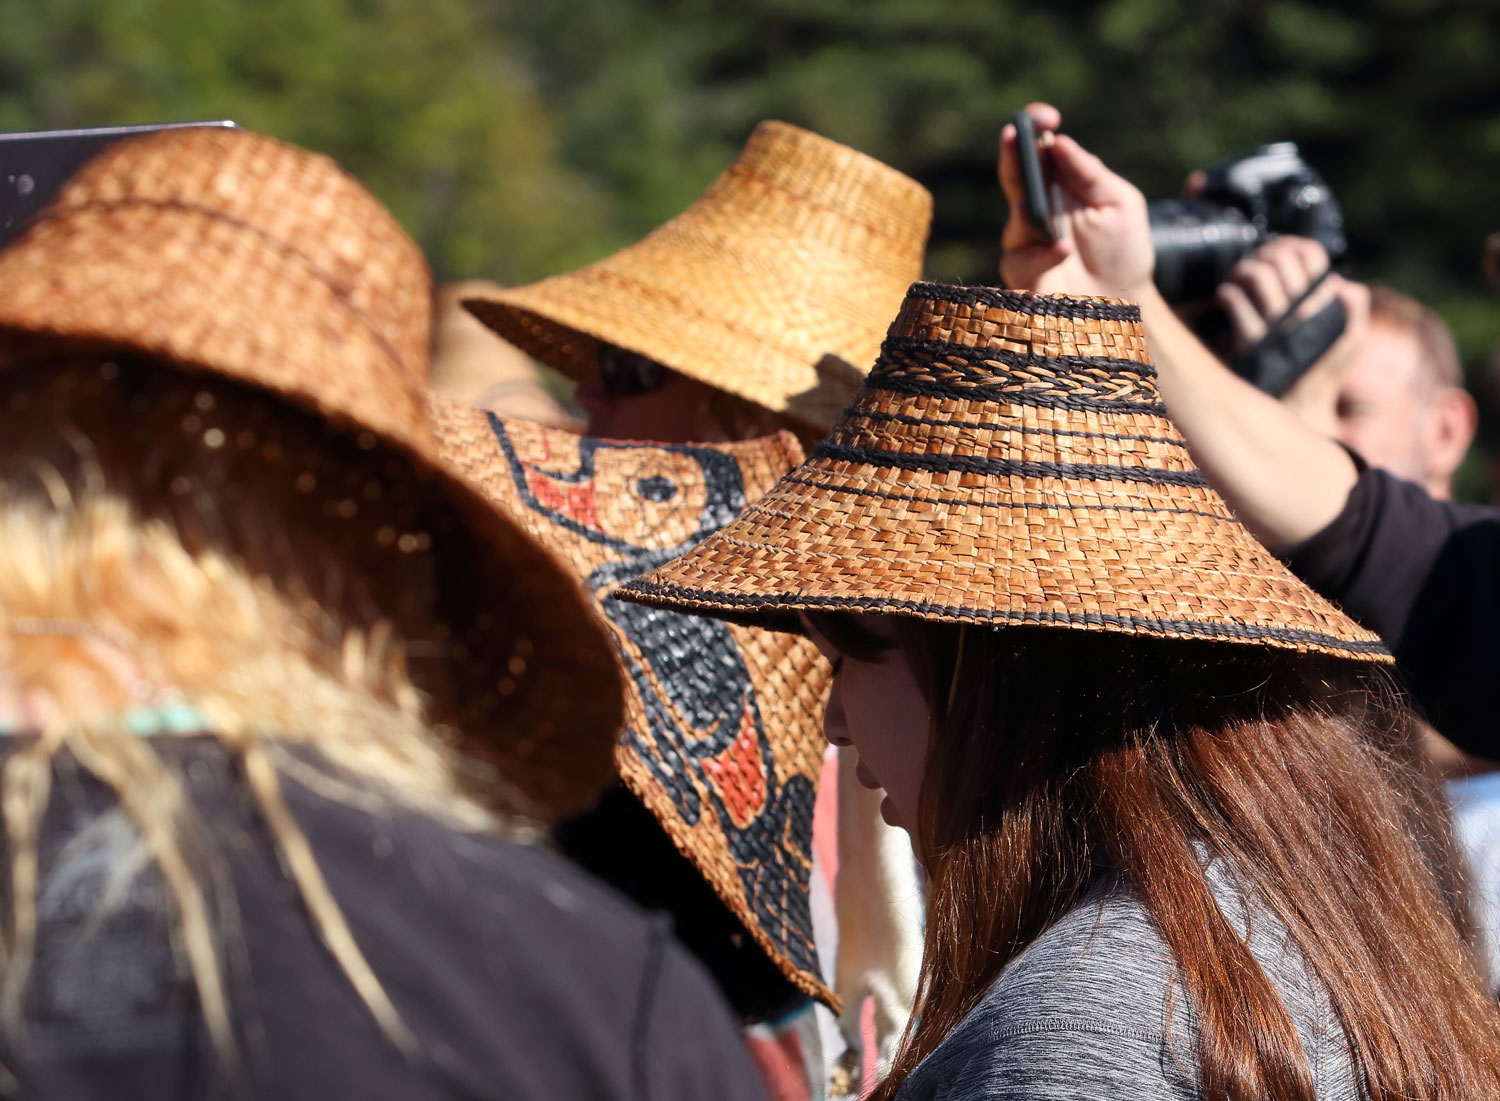 Cedar bark hats (and cell phones taking photos) were everywhere!